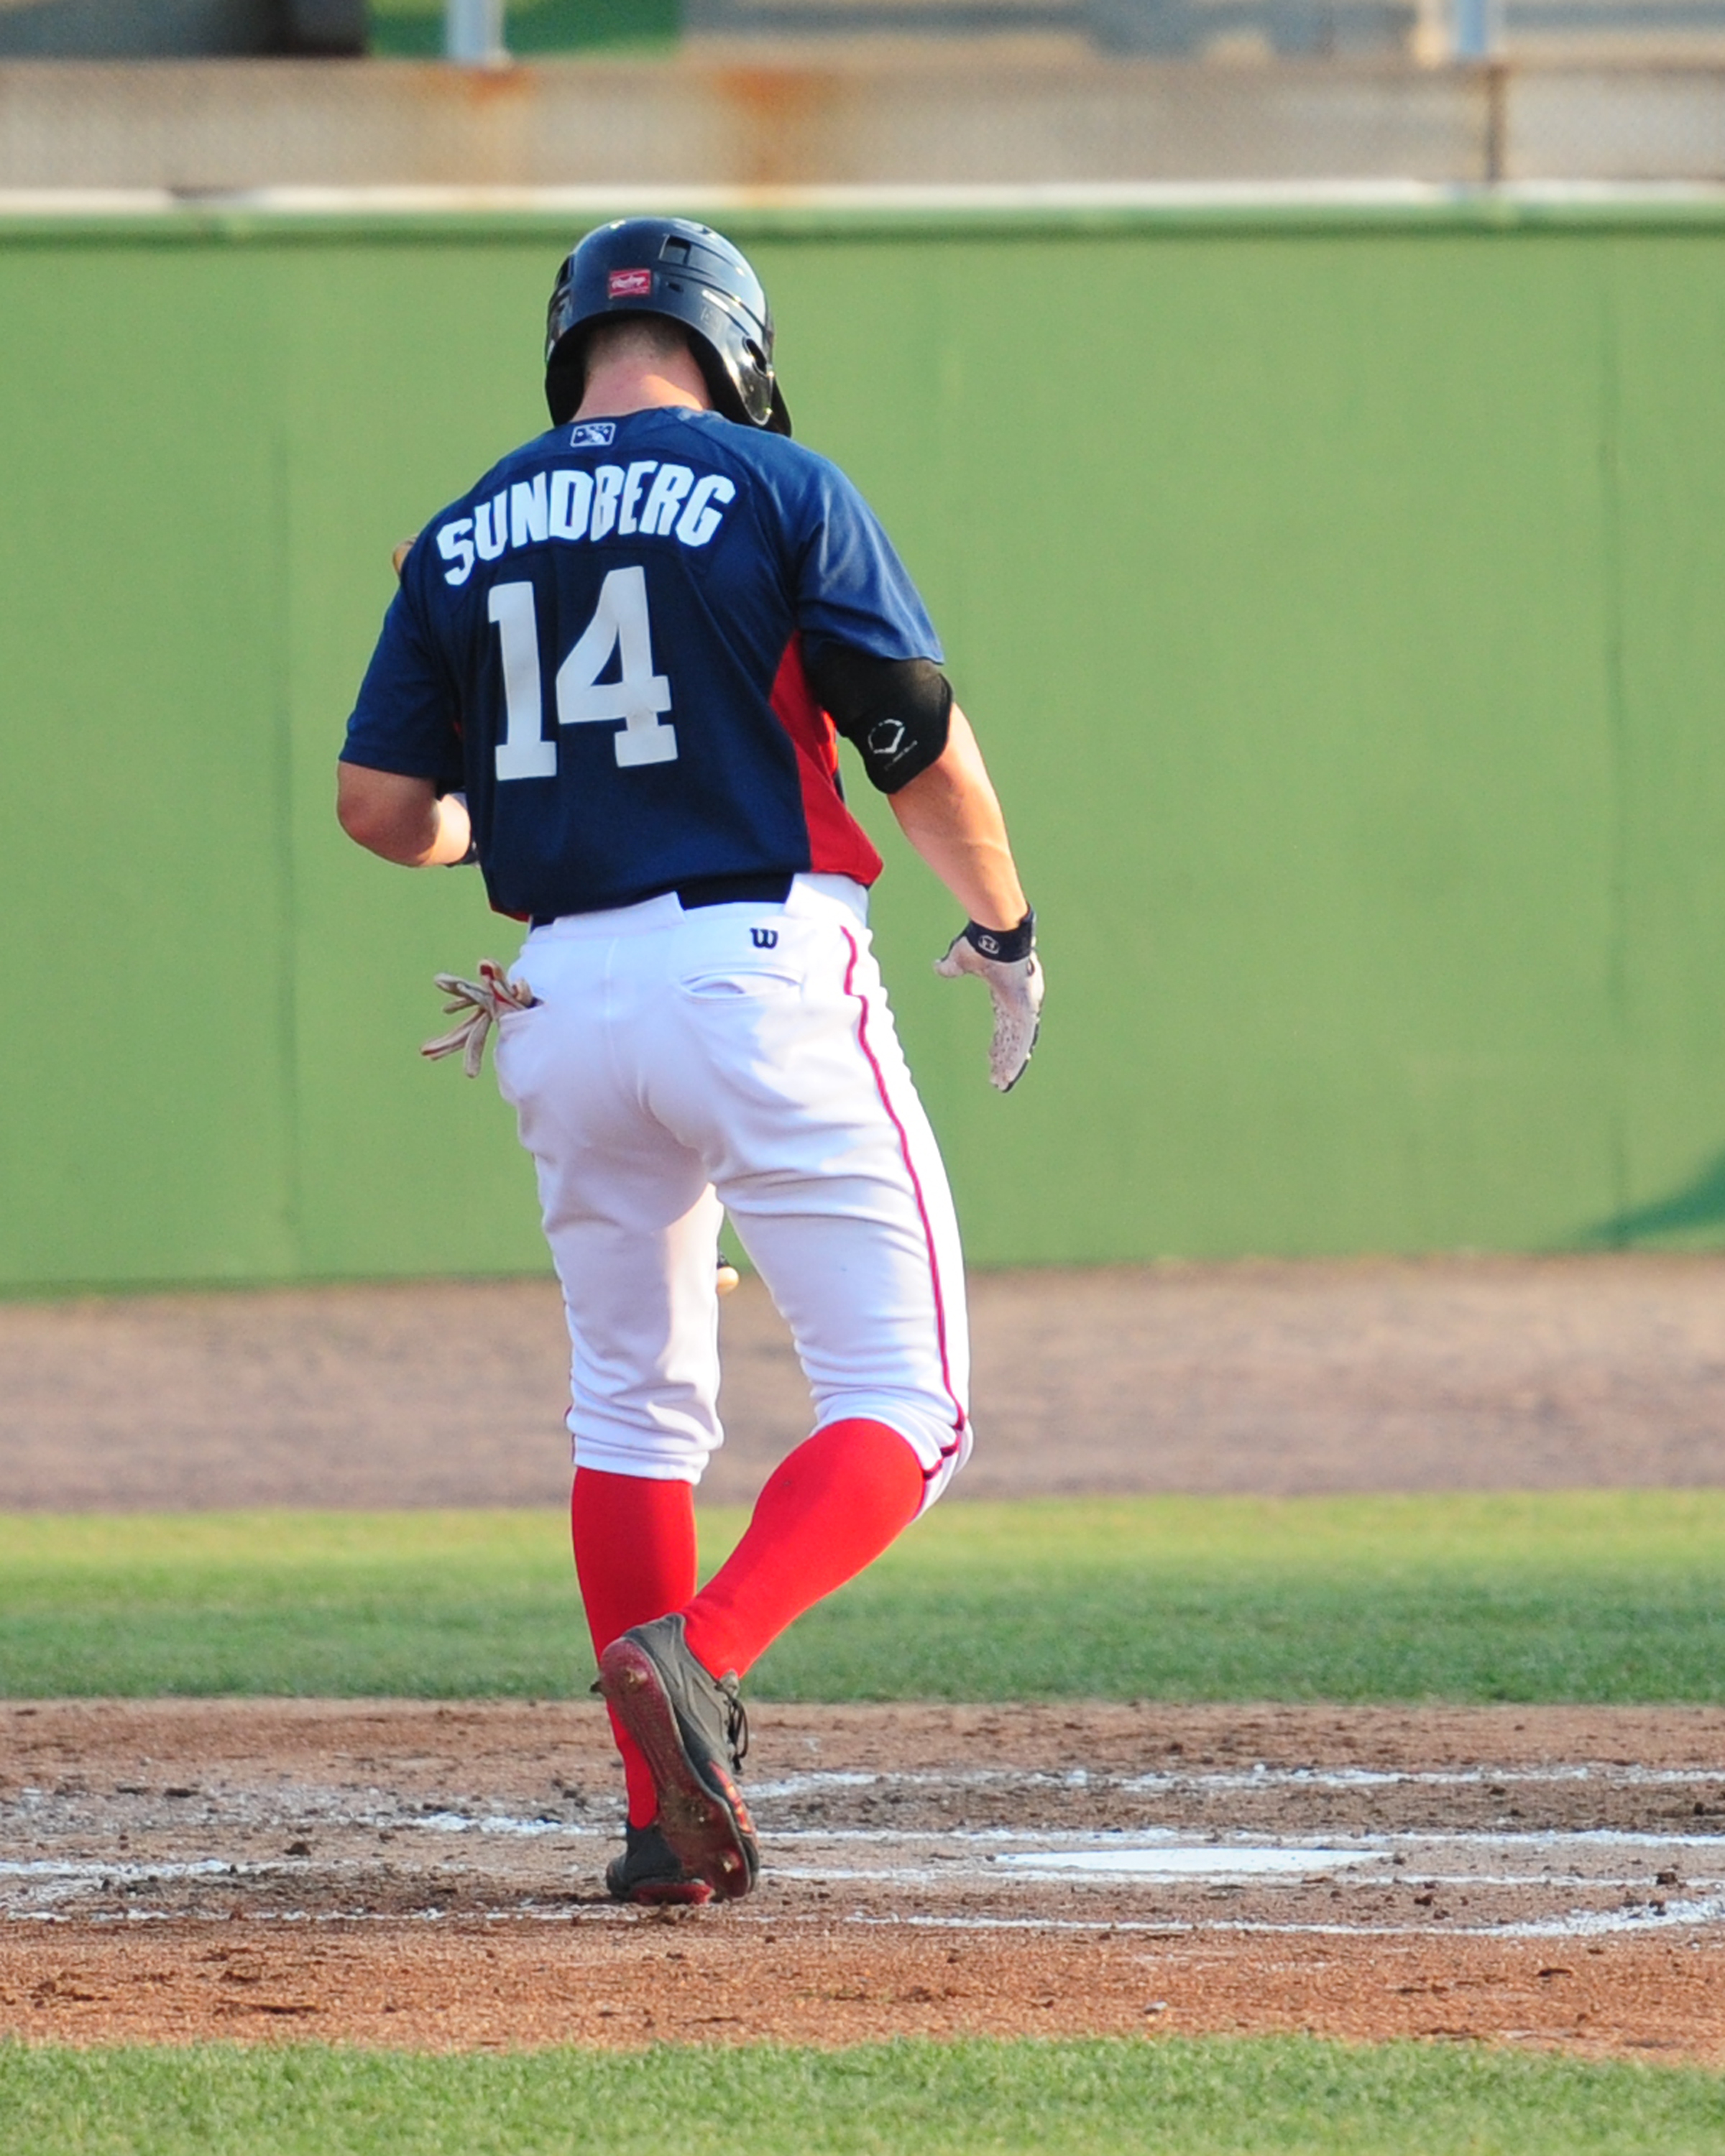 Jack Sundberg received the Potomac Nationals Offensive Co-Player of the Month in August 2017. He also received the team's Heart and Hustle Award in 2018. -